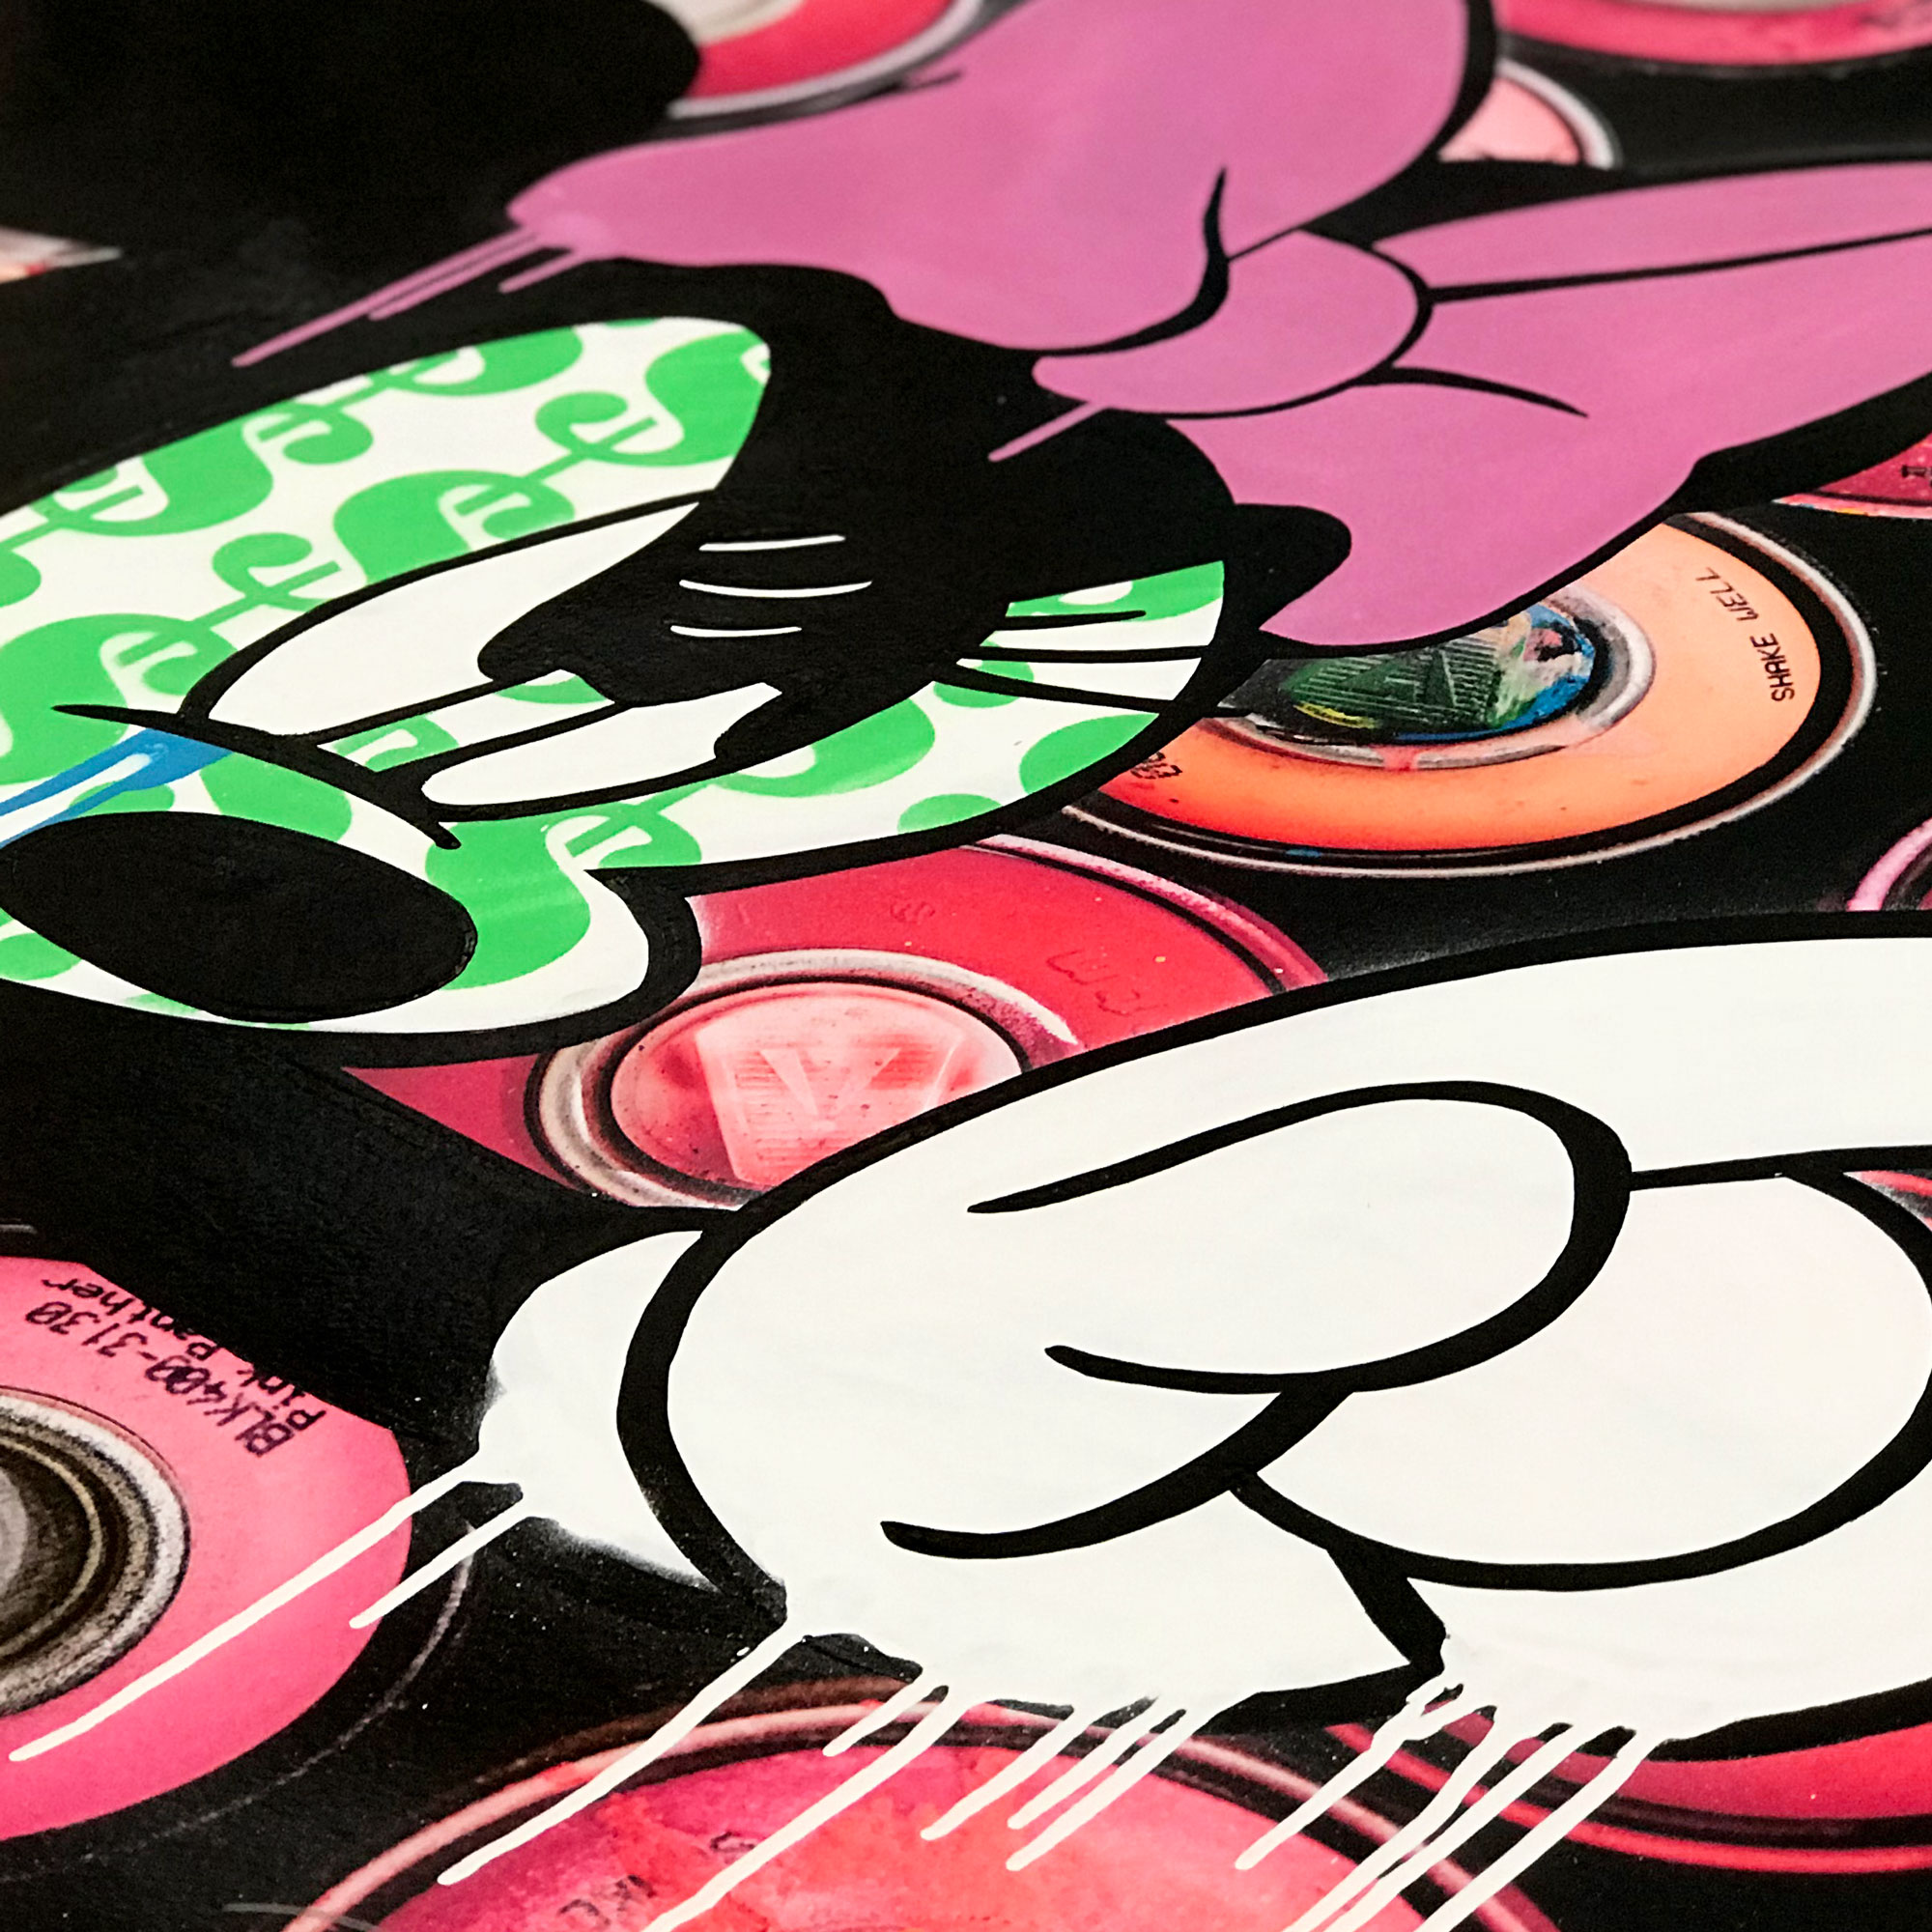 Minnie-Propaganda-Spray-Paint-Pink-Detail-02.jpg